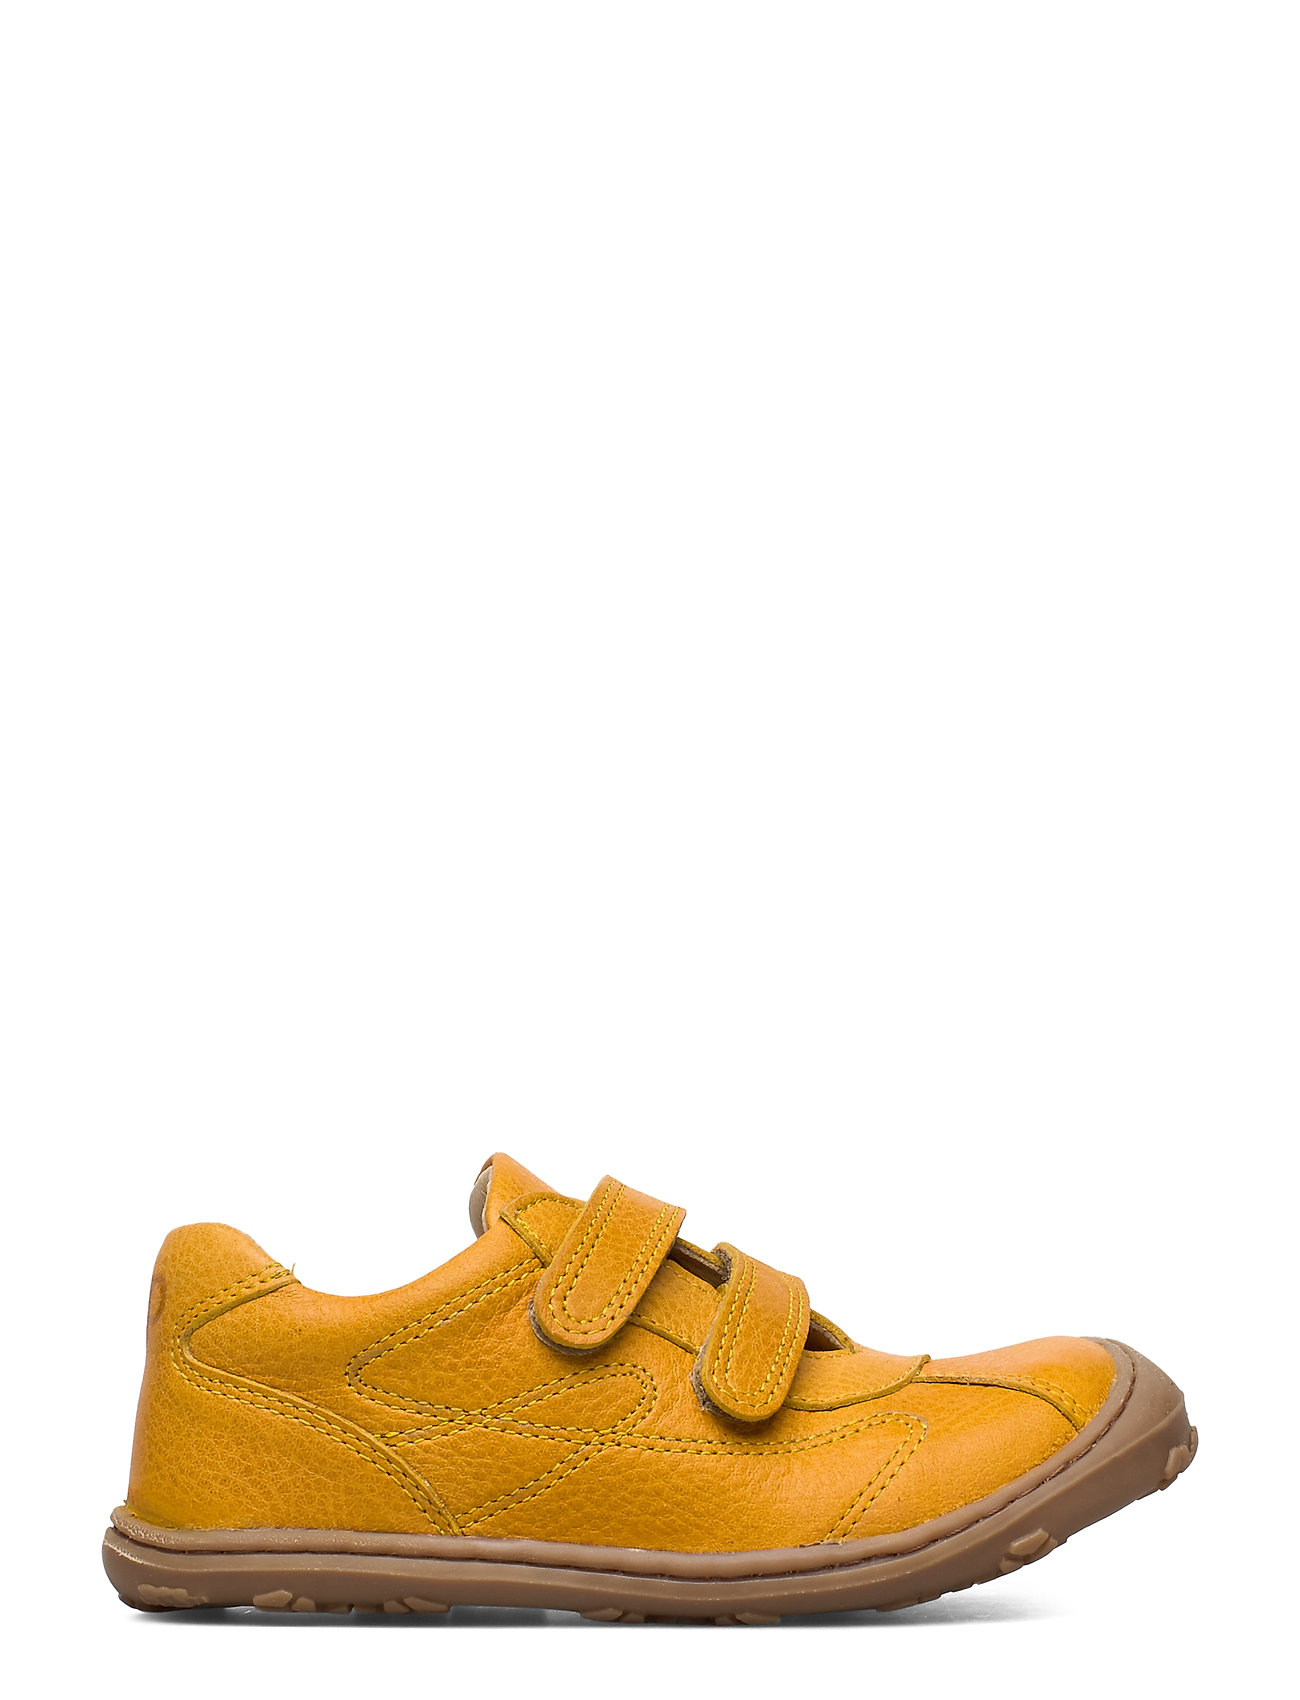 Image of Hand Made Shoe Low-top Sneakers Gul Arauto RAP (3494191425)